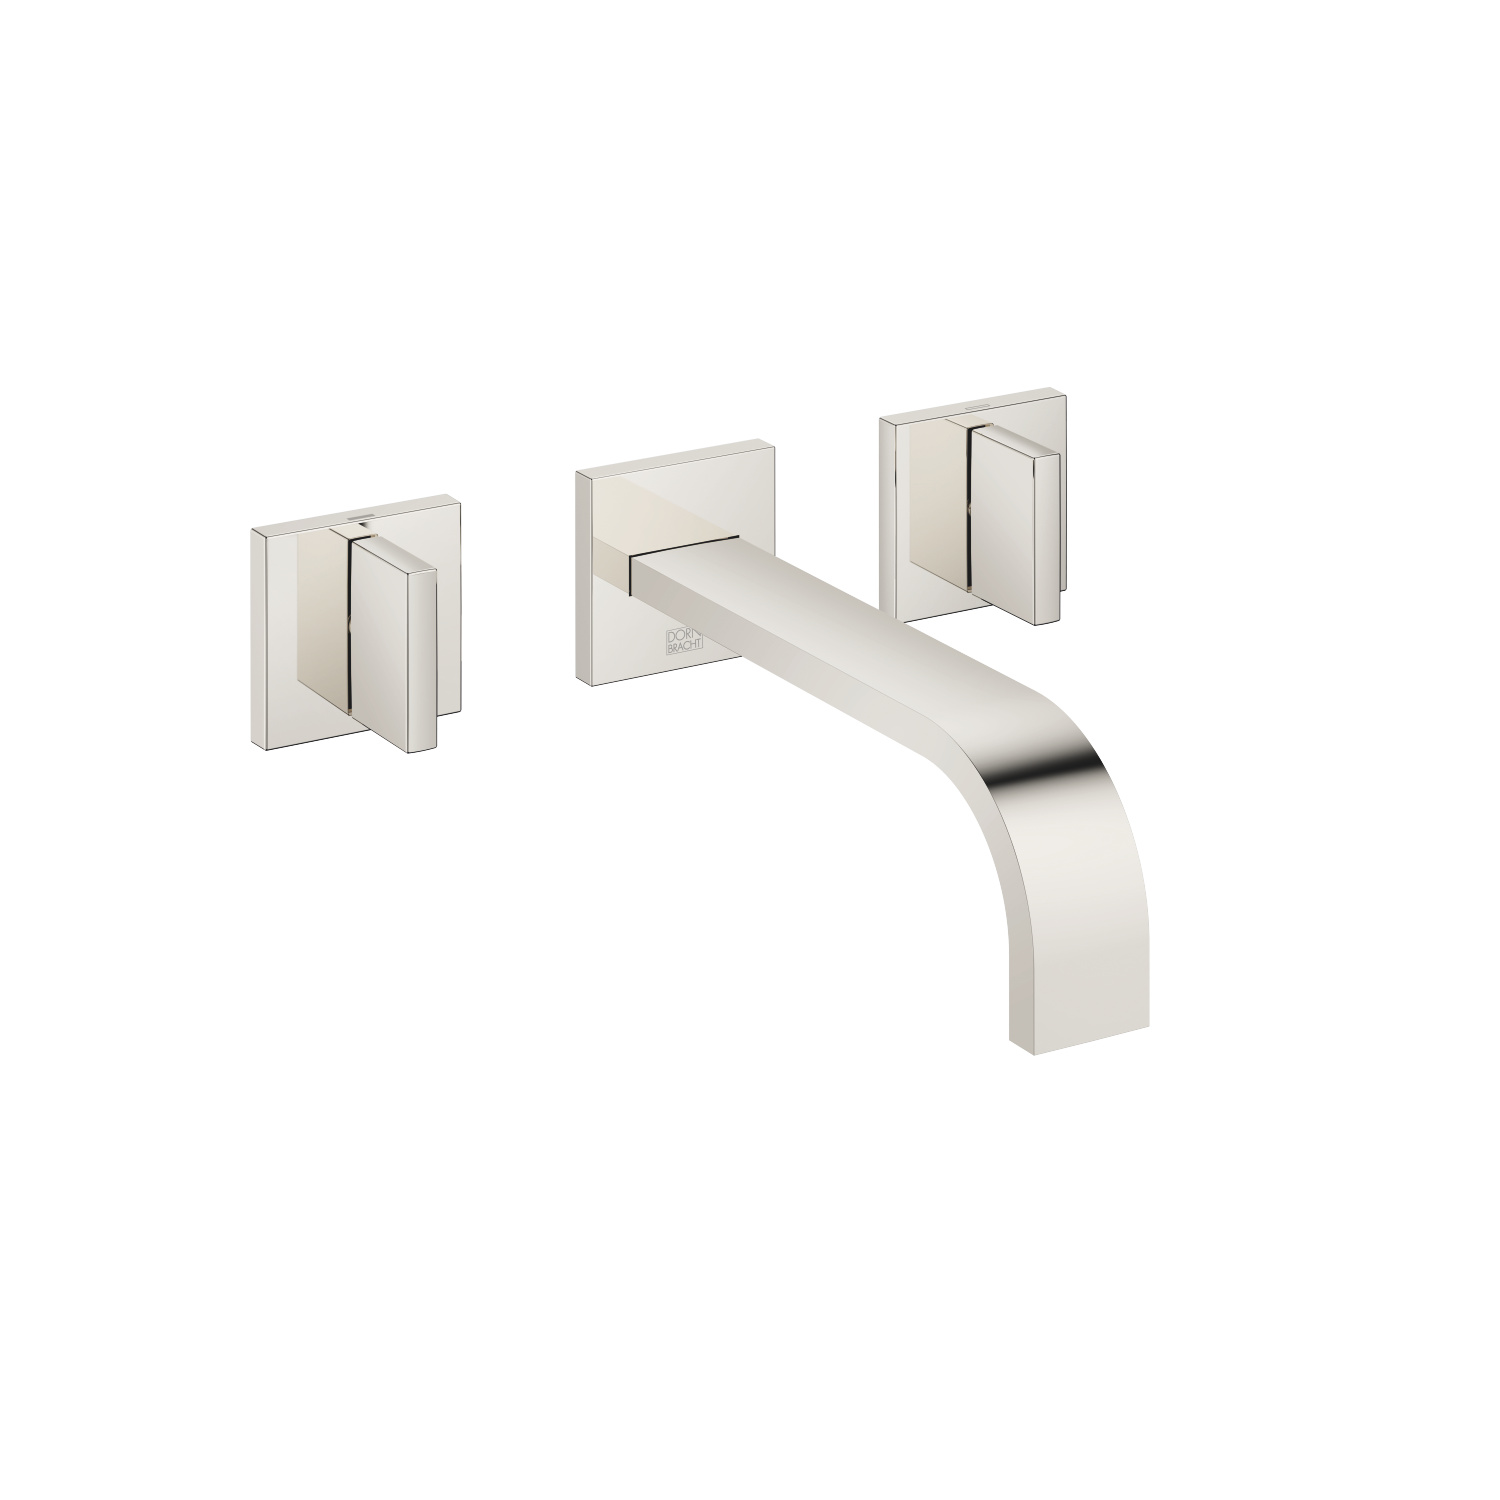 Wall-mounted basin mixer without pop-up waste - platinum - 36 712 782-08